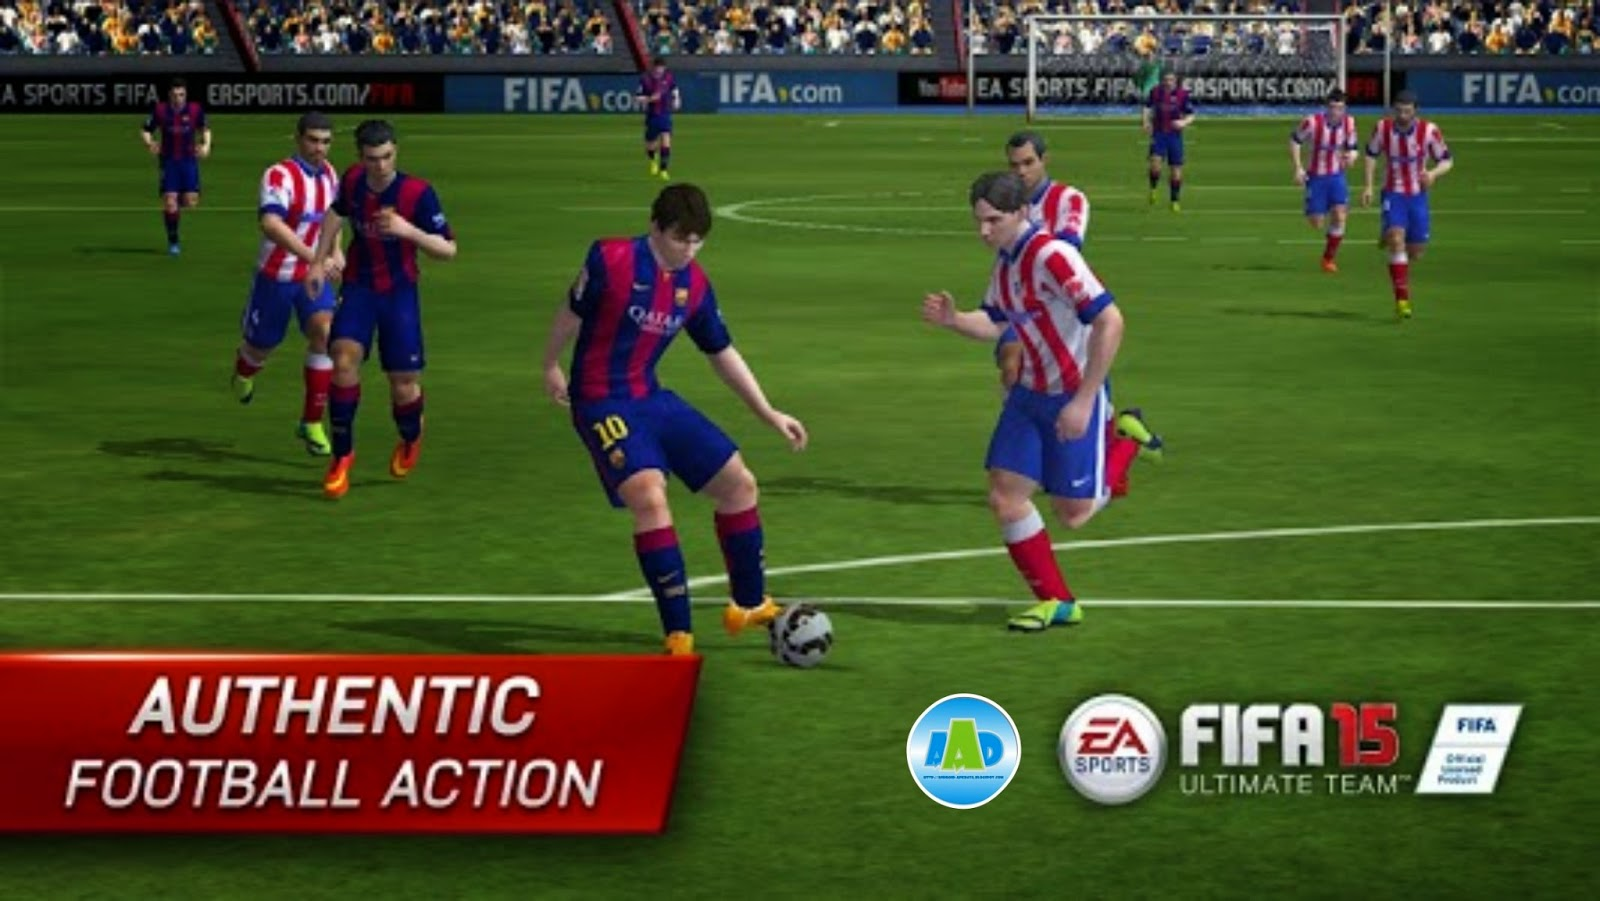 FIFA 15 Ultimate Team Full Apk Data